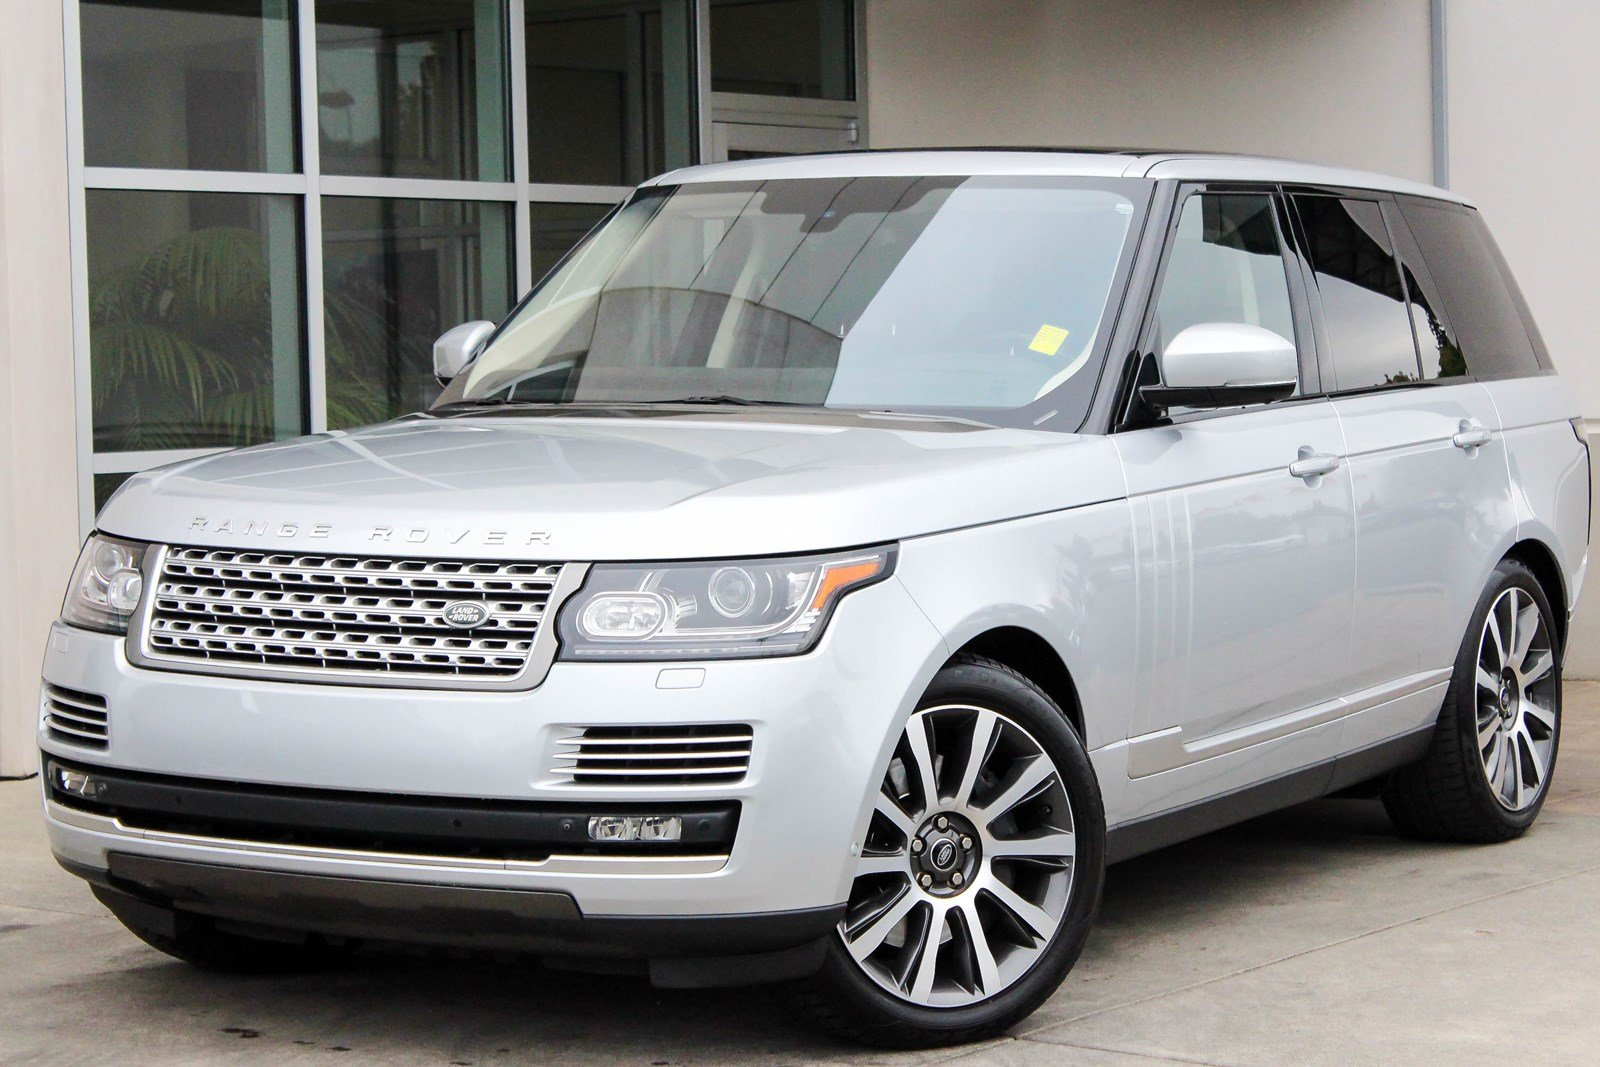 Certified Pre-Owned 2014 Land Rover Range Rover Supercharged Autobiography